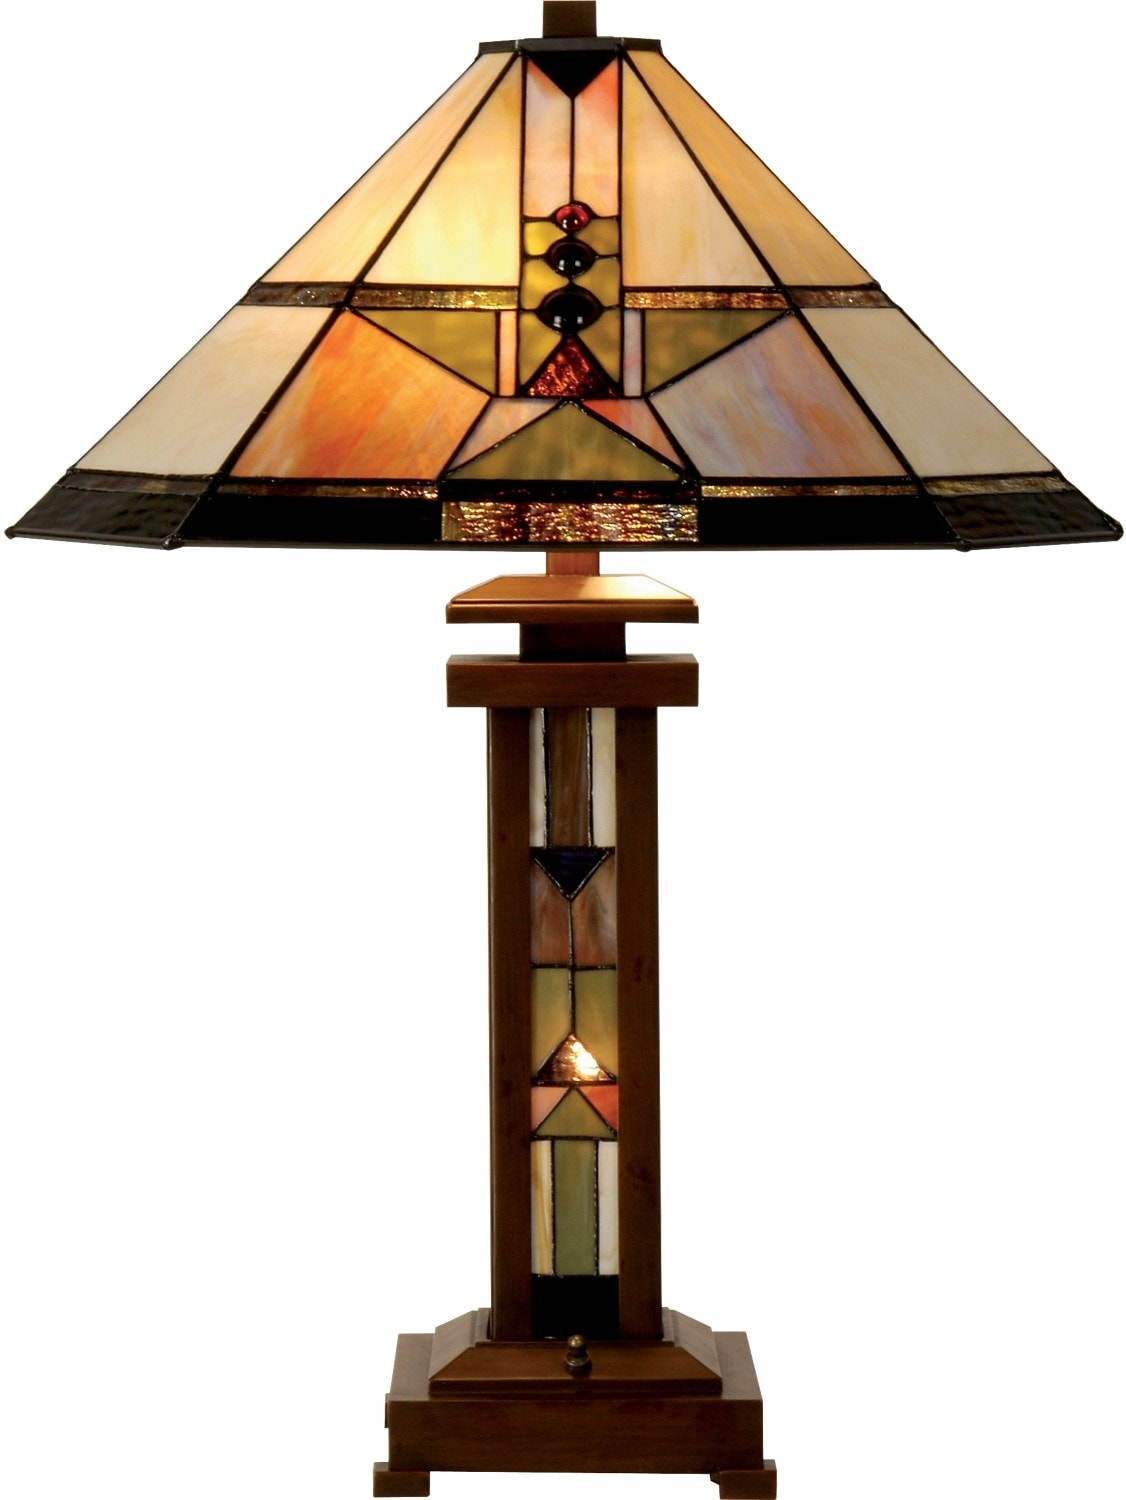 Home Accessories - Drake Table Lamp with Stained Glass Shade